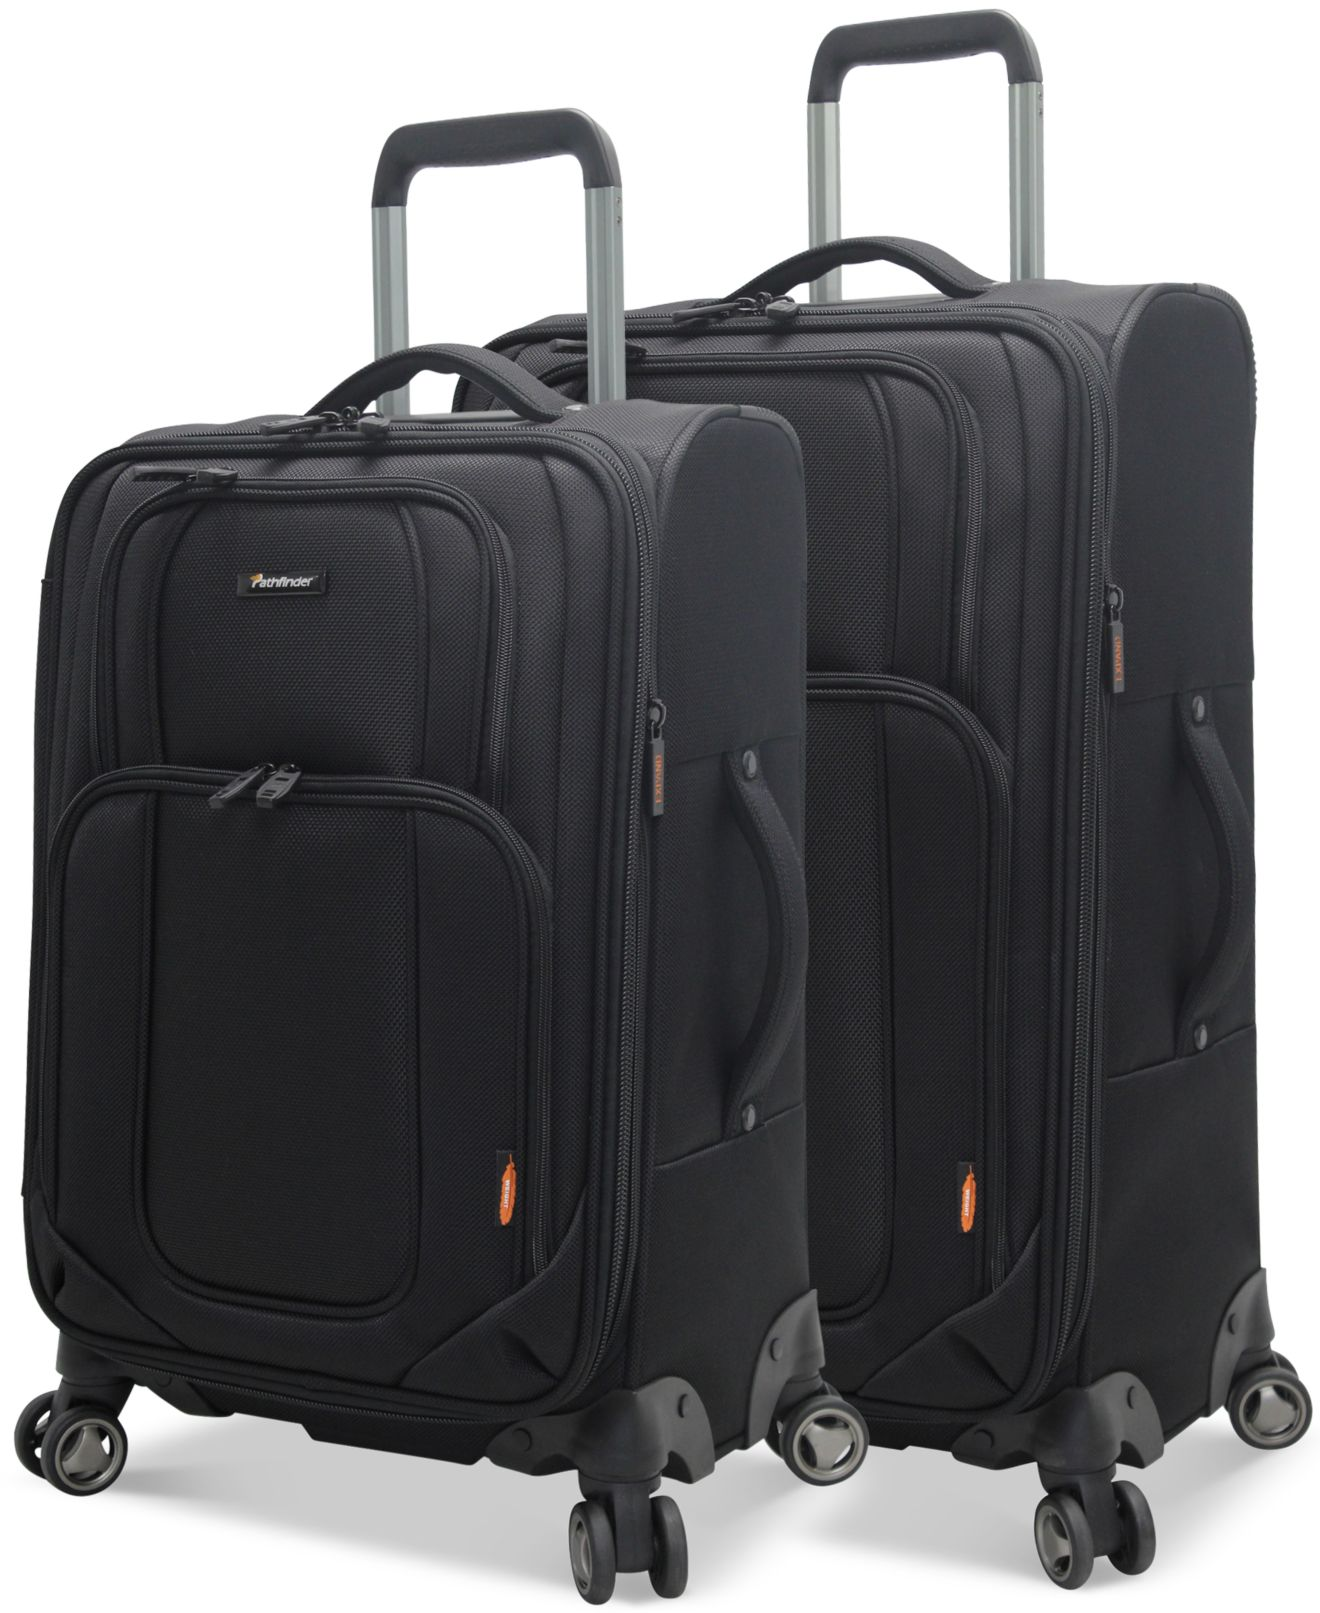 Clearance/Closeout - Discount Luggage Sale - Macy's